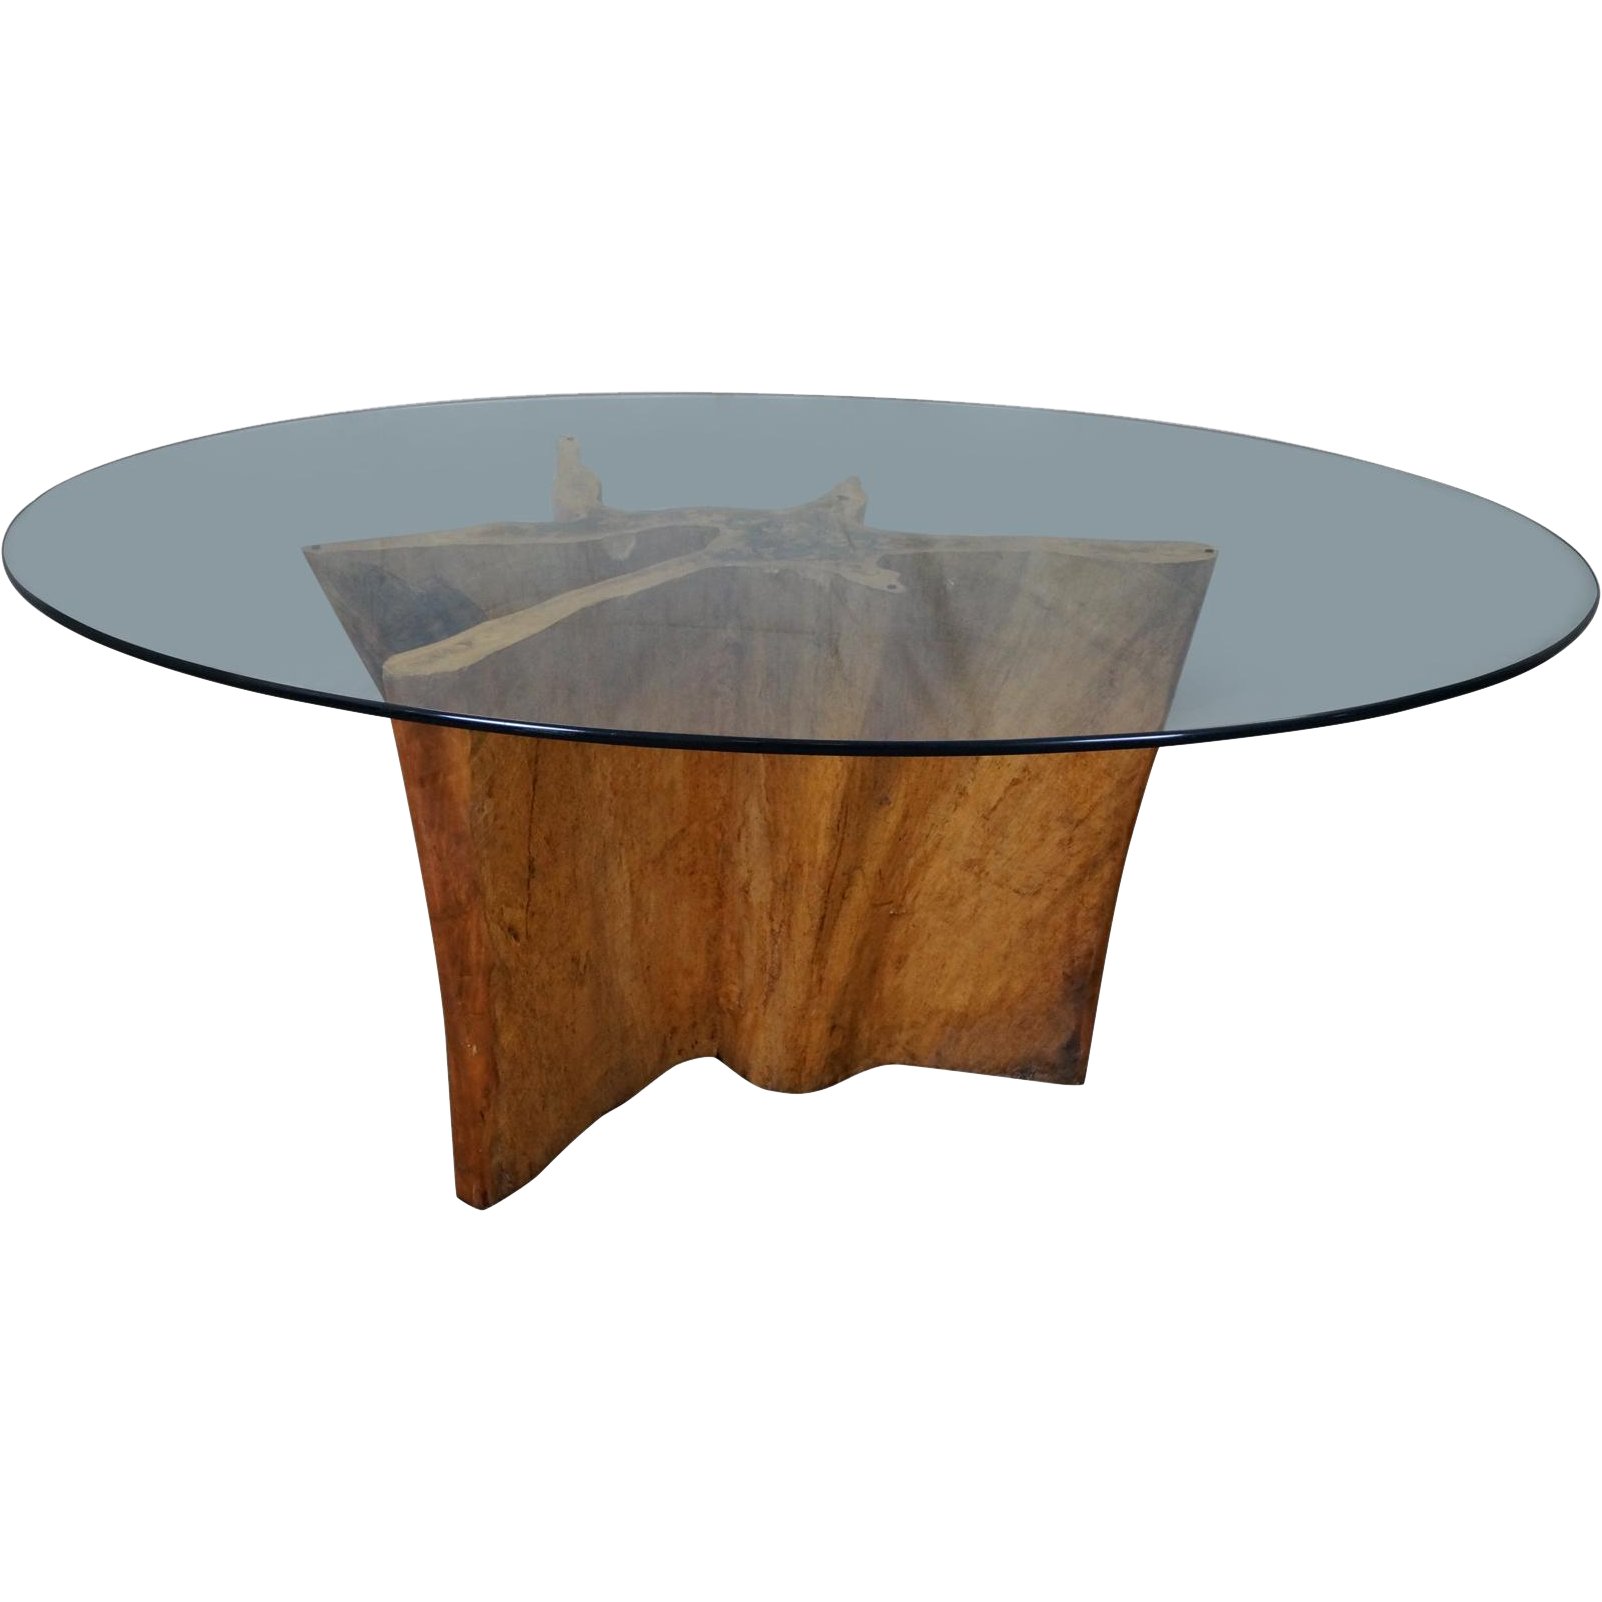 Large size of round dining table for 8 melbourne halo grey for 52 glass table top